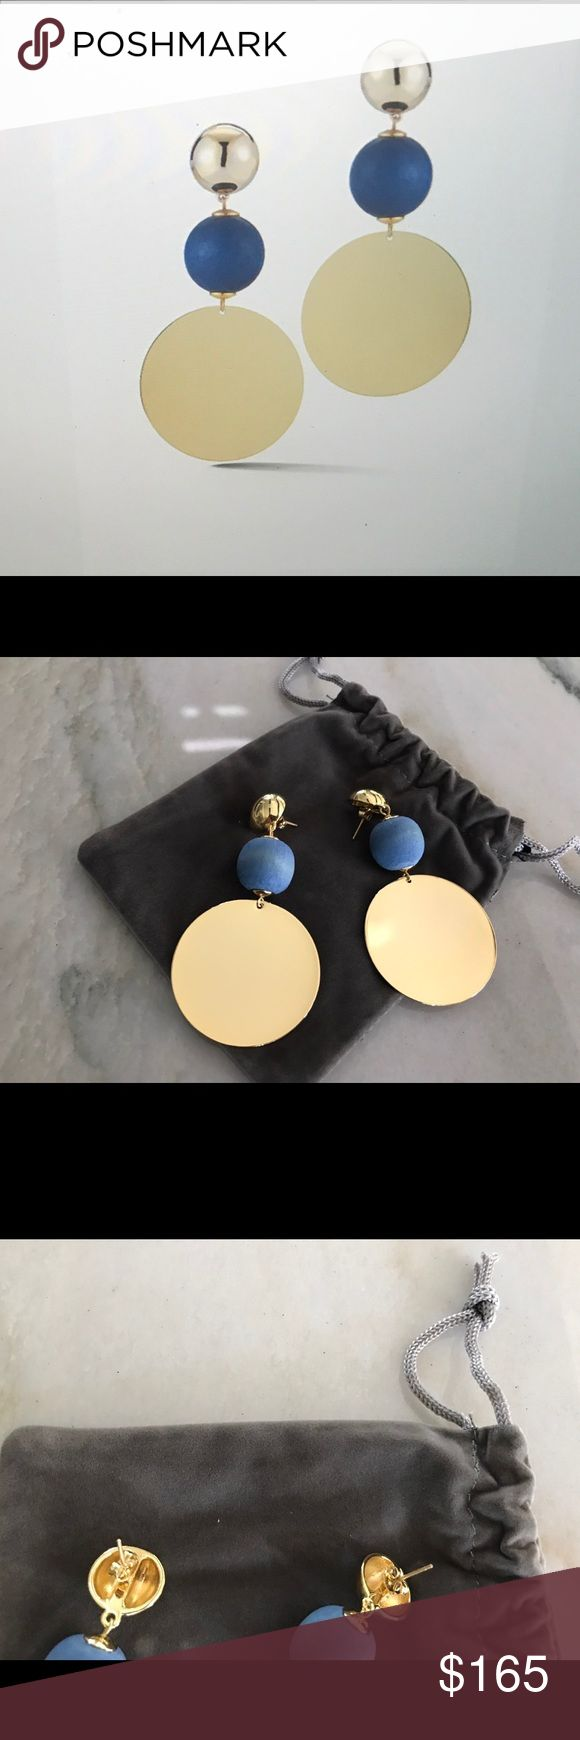 """Jennifer Miller Disk Drop Earrings Brand new. Have receipt. Never have been worn are a pair of Jennifer Miller Disk Drop Earrings.  Details Sphere, Blue wood bead, and Disk triple Drop Earrings. Yellow Gold Plated. Pierced. 3""""Long Jennifer Miller Jewelry Jewelry Earrings"""